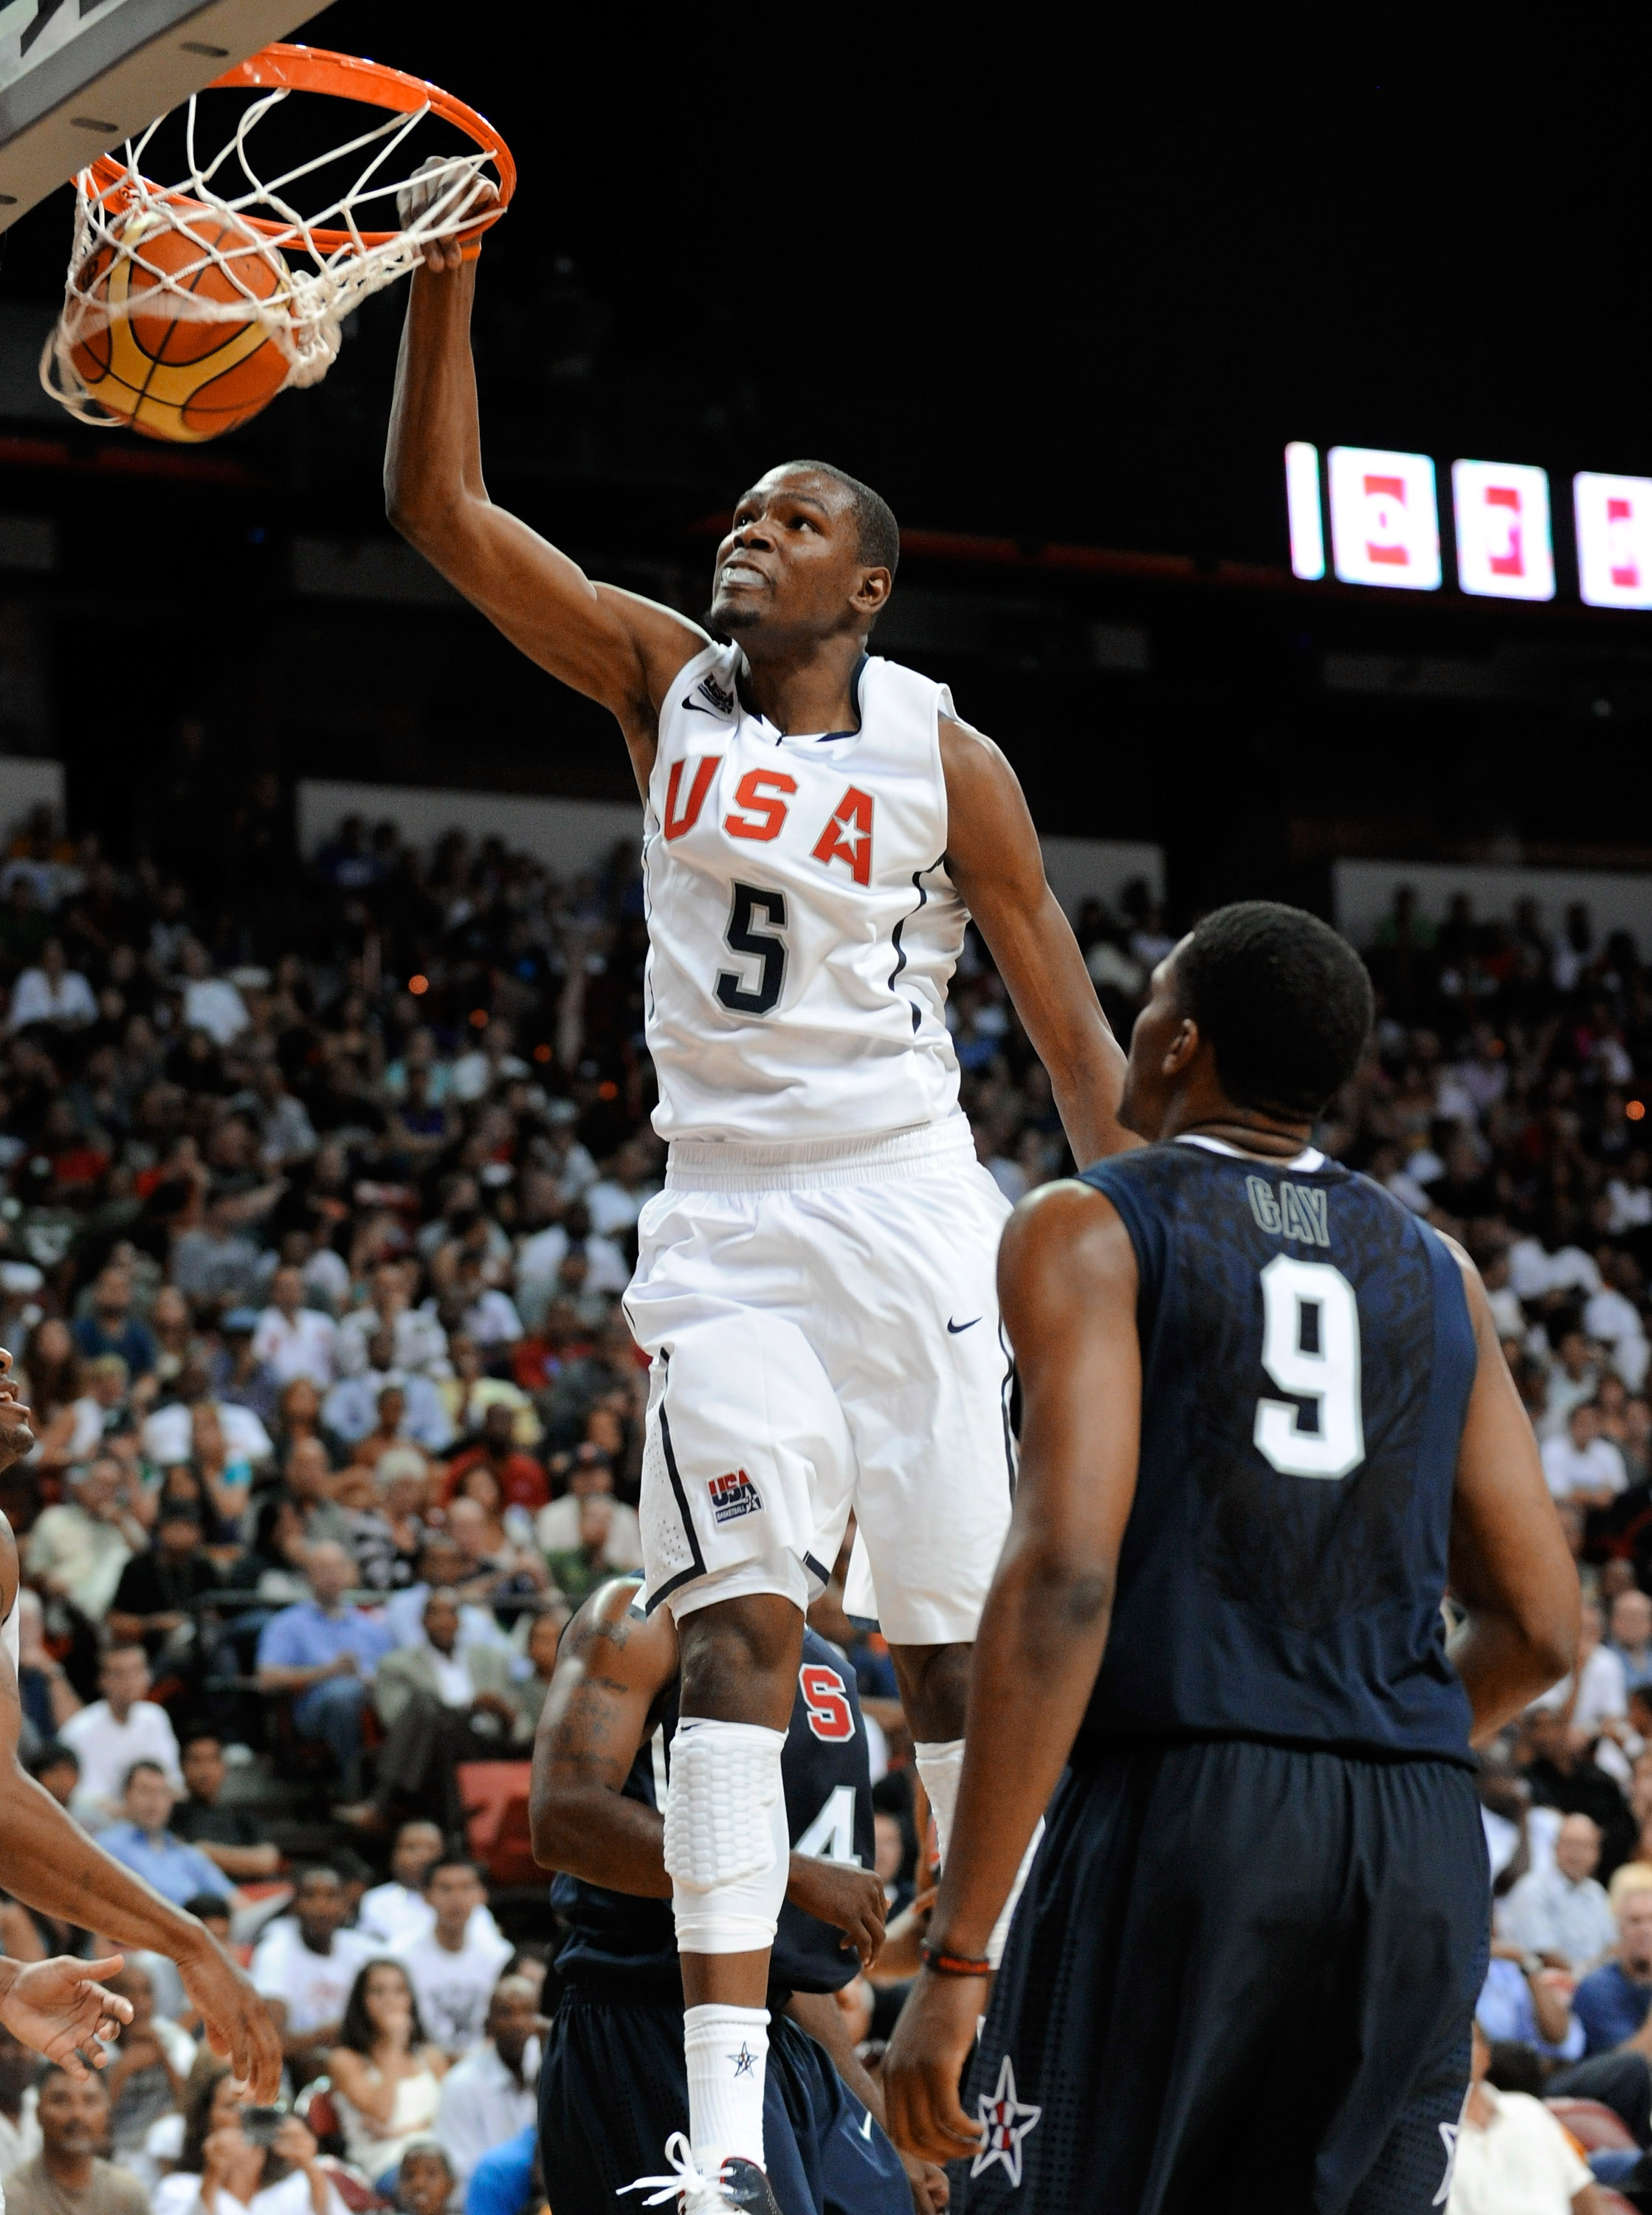 LAS VEGAS - JULY 24:  Kevin Durant #5 of the 2010 USA Basketball Men's National Team dunks over Rudy Gay #9 of the 2010 USA Basketball Men's National Team during a USA Basketball showcase at the Thomas & Mack Center on July 24, 2010 in Las Vegas, Nevada.